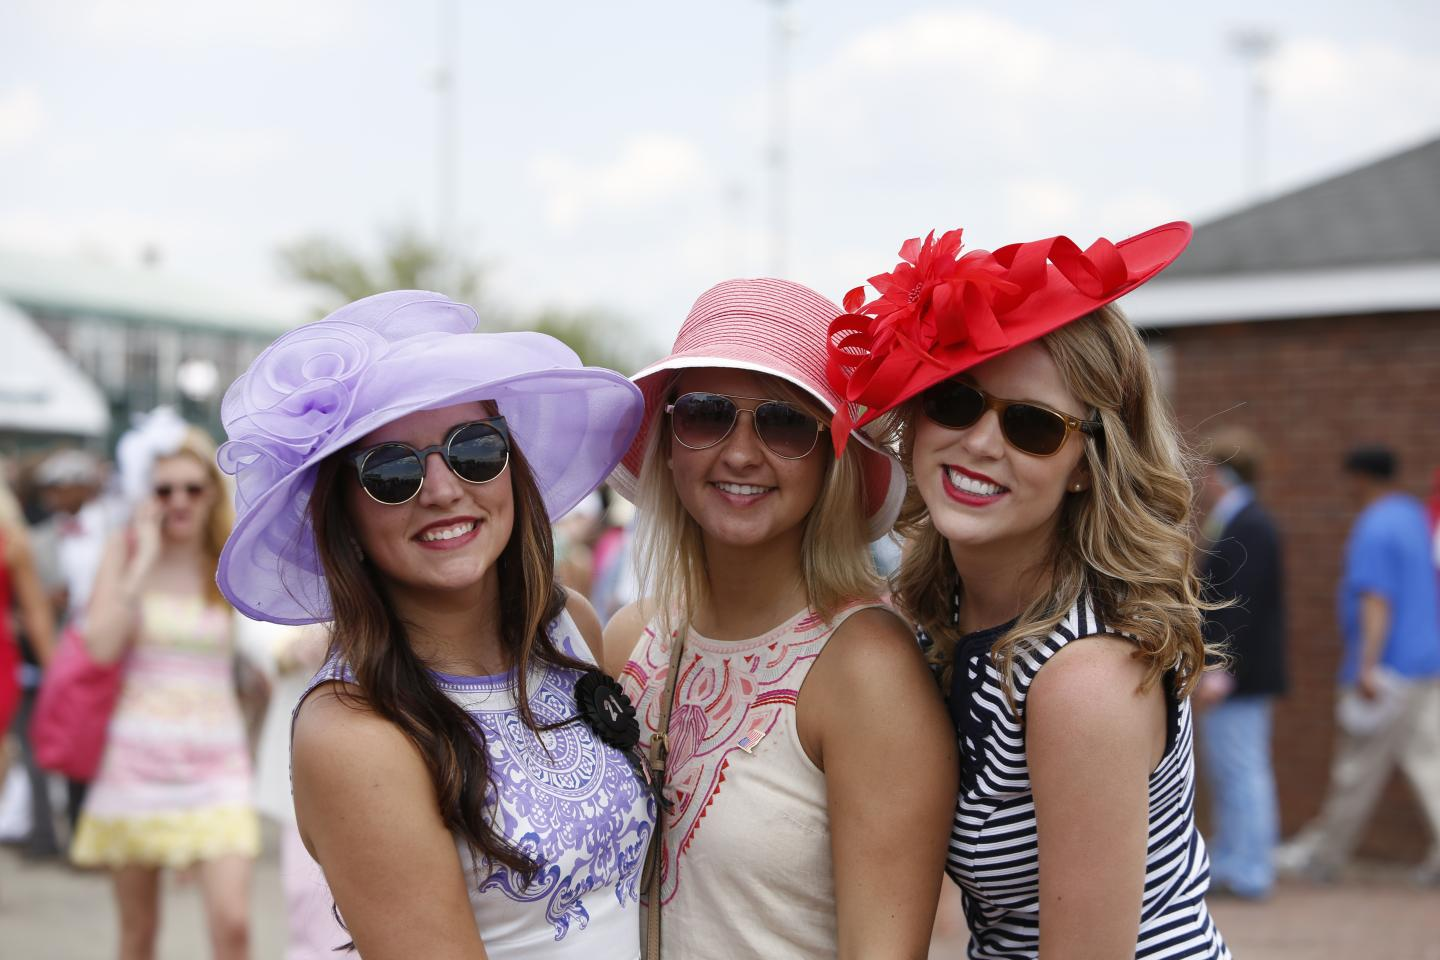 3 cute young girls with hats